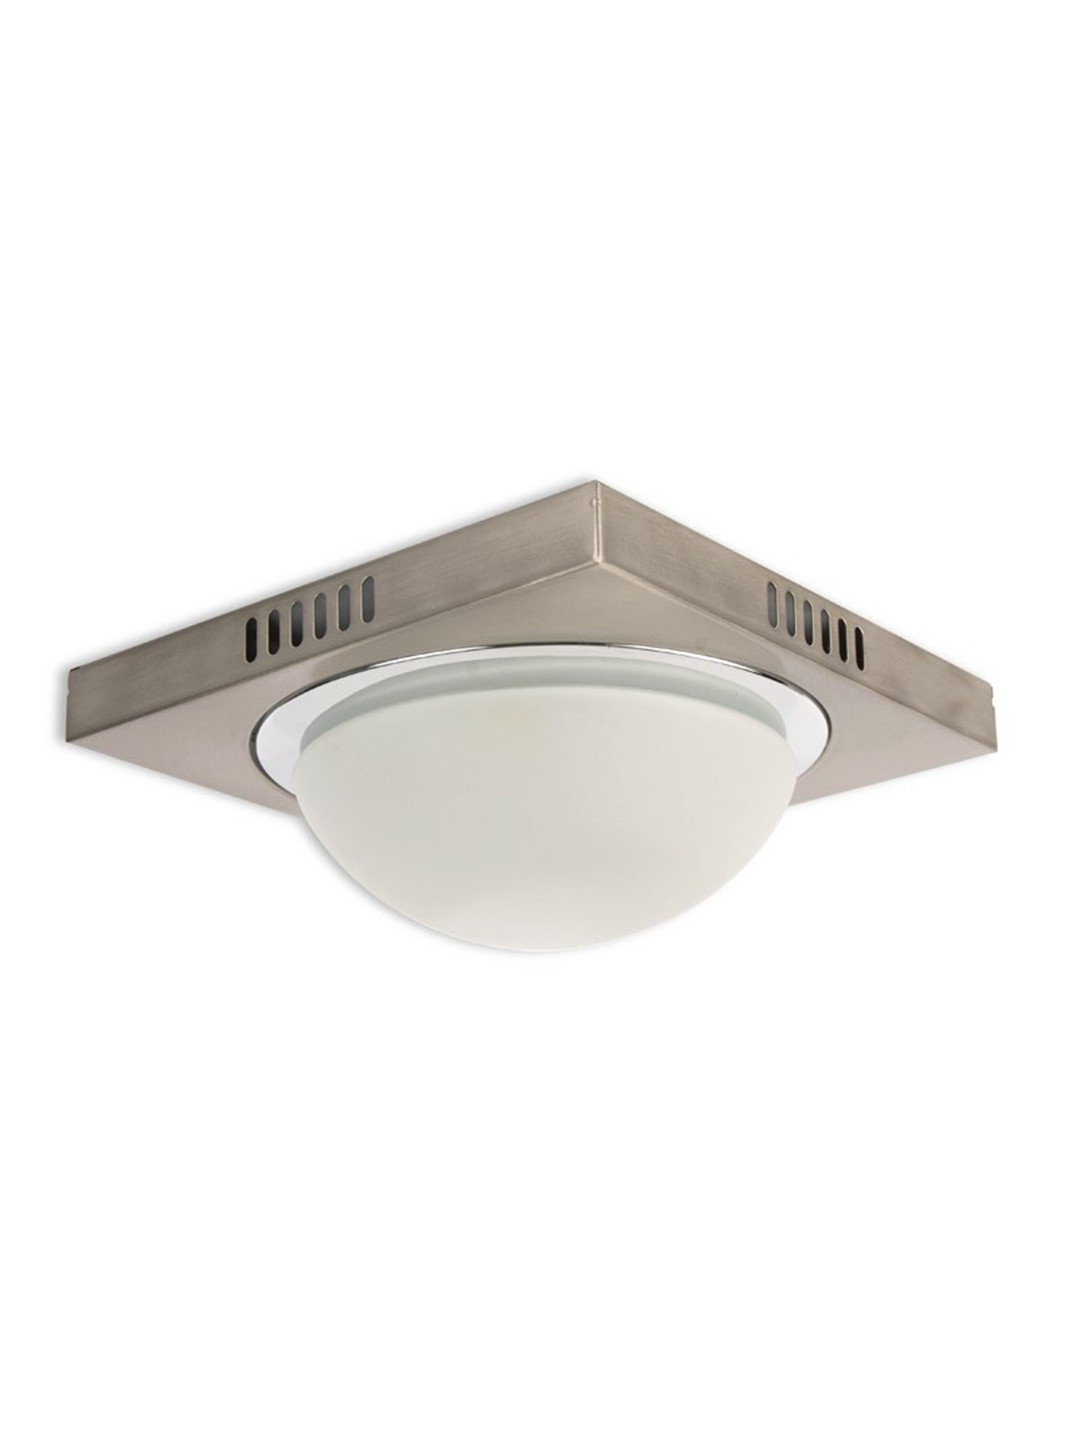 Satin Steel 0016 Ceiling Light